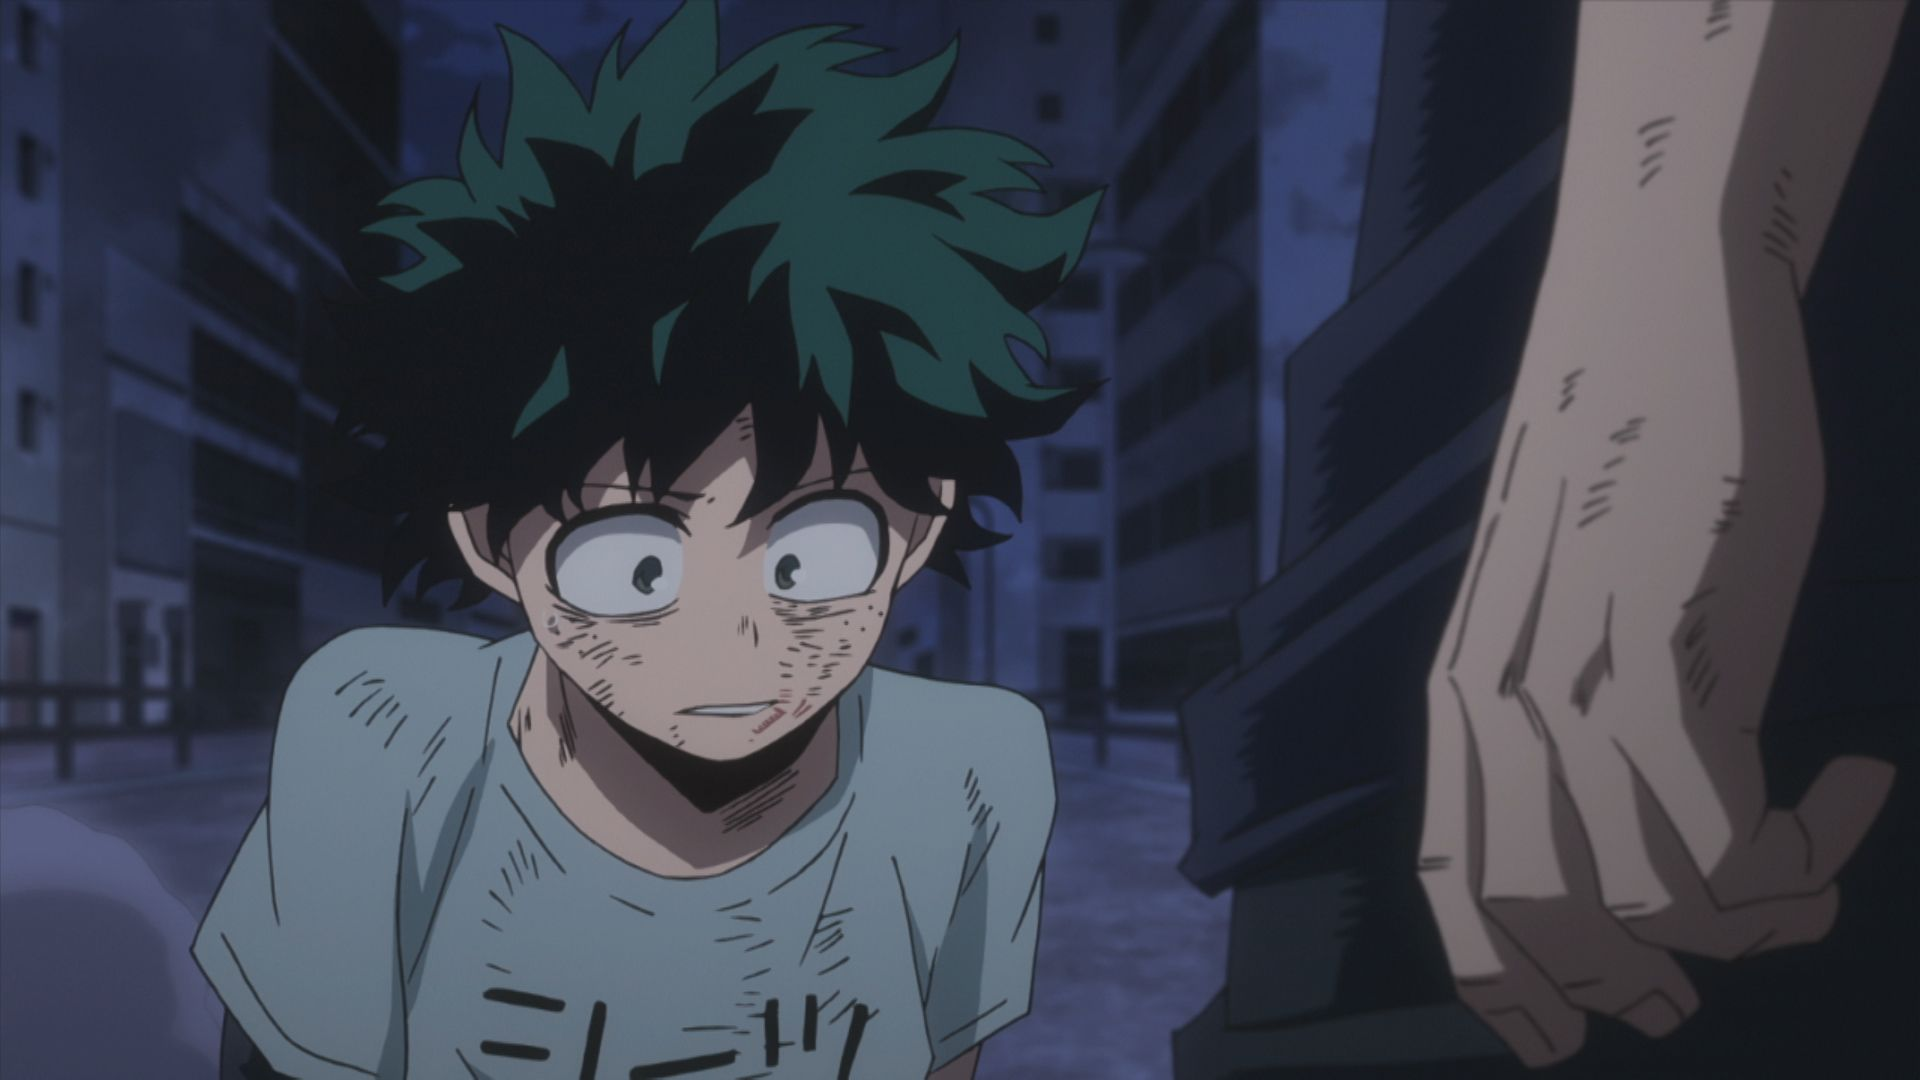 Watch My Hero Academia on Adult Swim